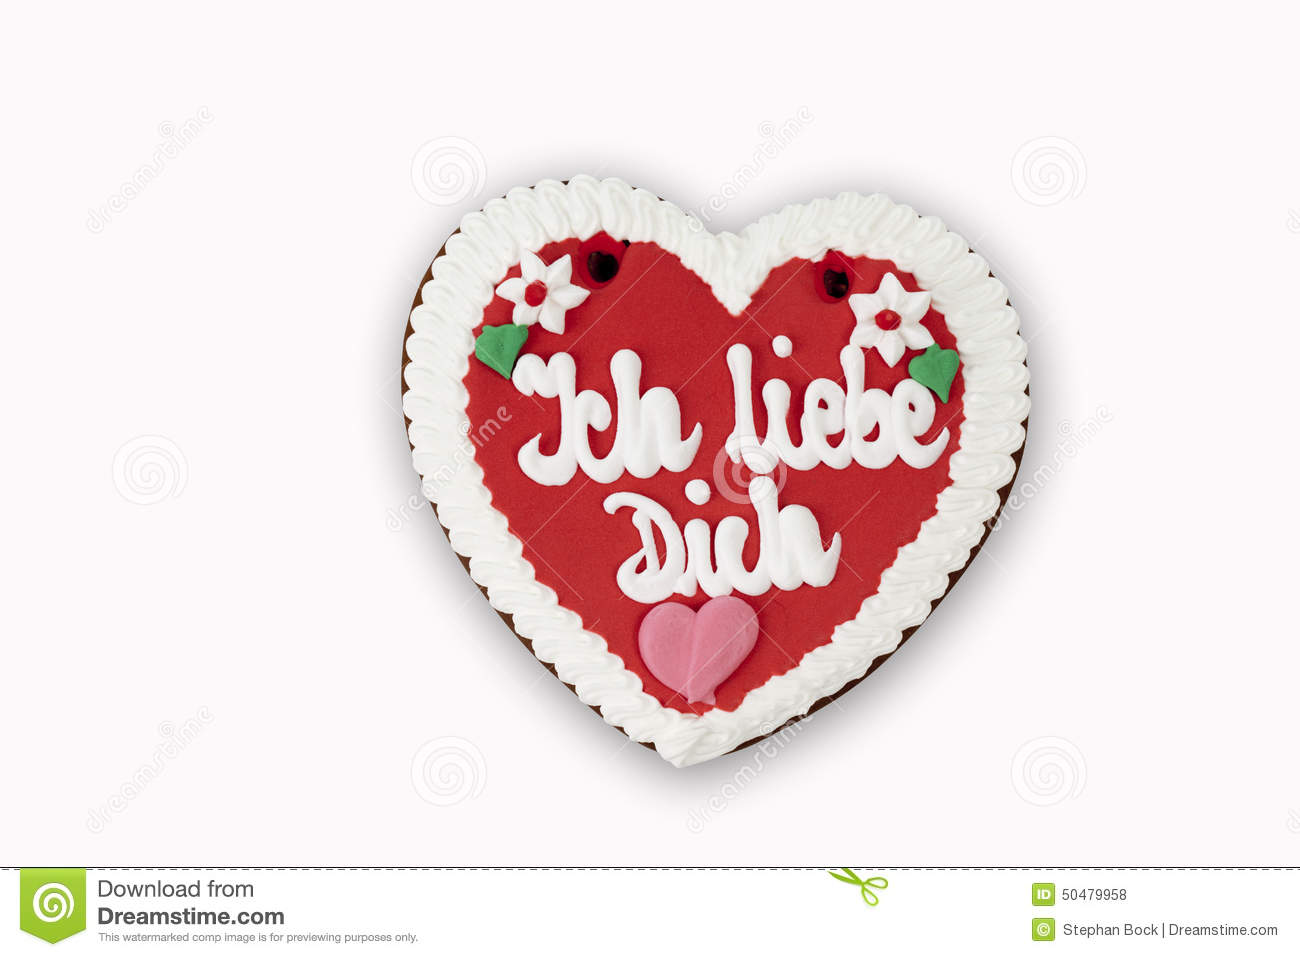 Clipart ich liebe dich. Heart with poster hanging